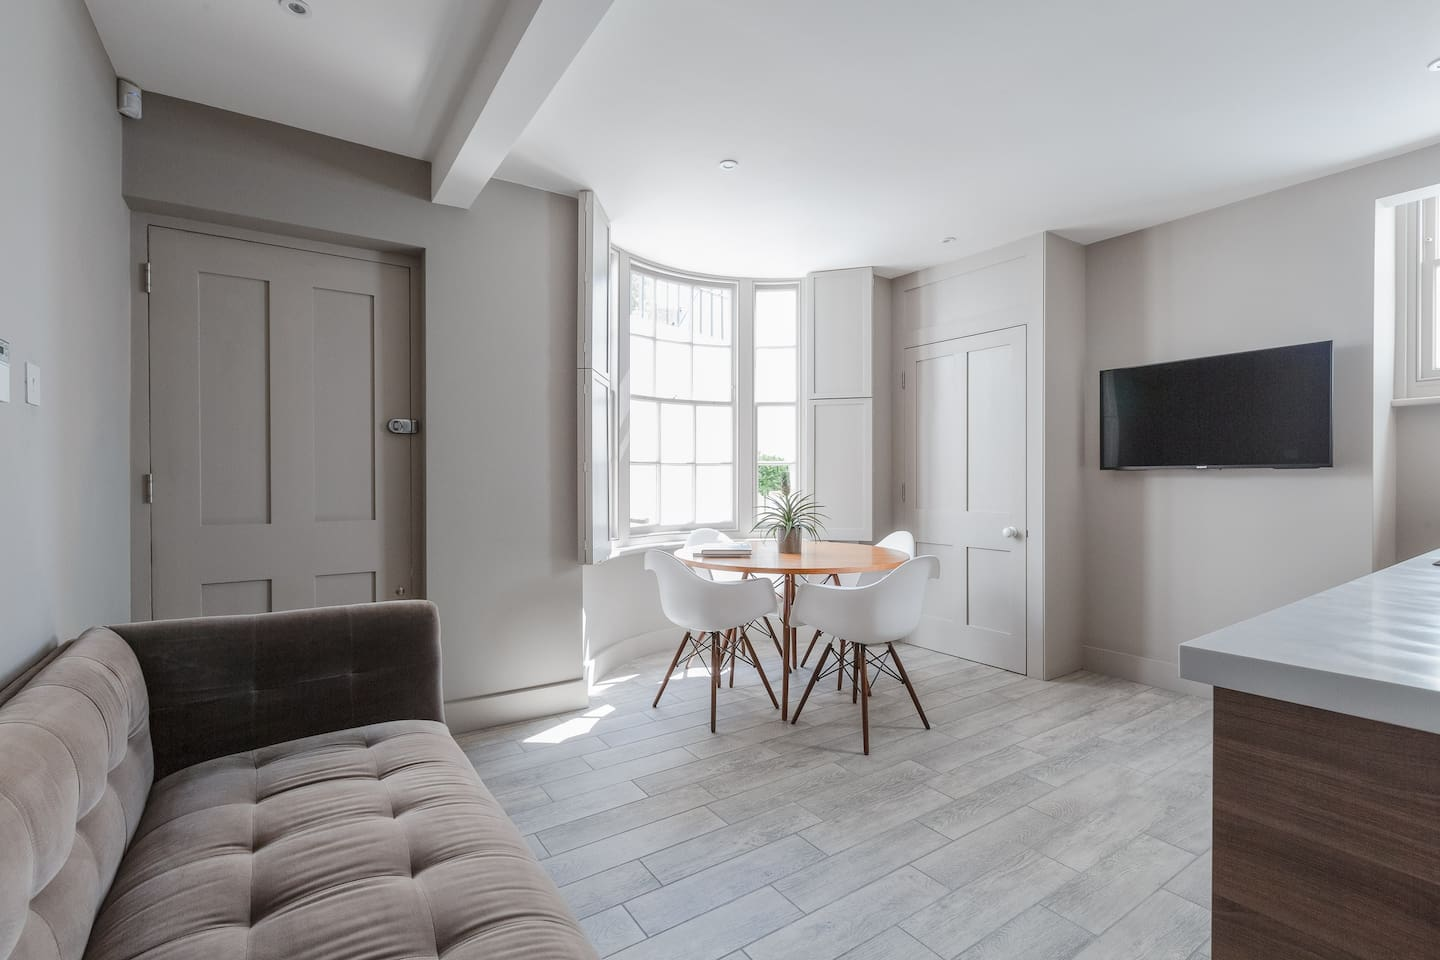 A beautiful Grade II listed apartment, newly decorated throughout with state of the art contemporary finishes. The open plan kitchen/dining/ living area at the front of the building has a beautiful bay window to the front which floods the space with an abundance of light and split shutters for privacy- an idyllic space to relax and unwind in.